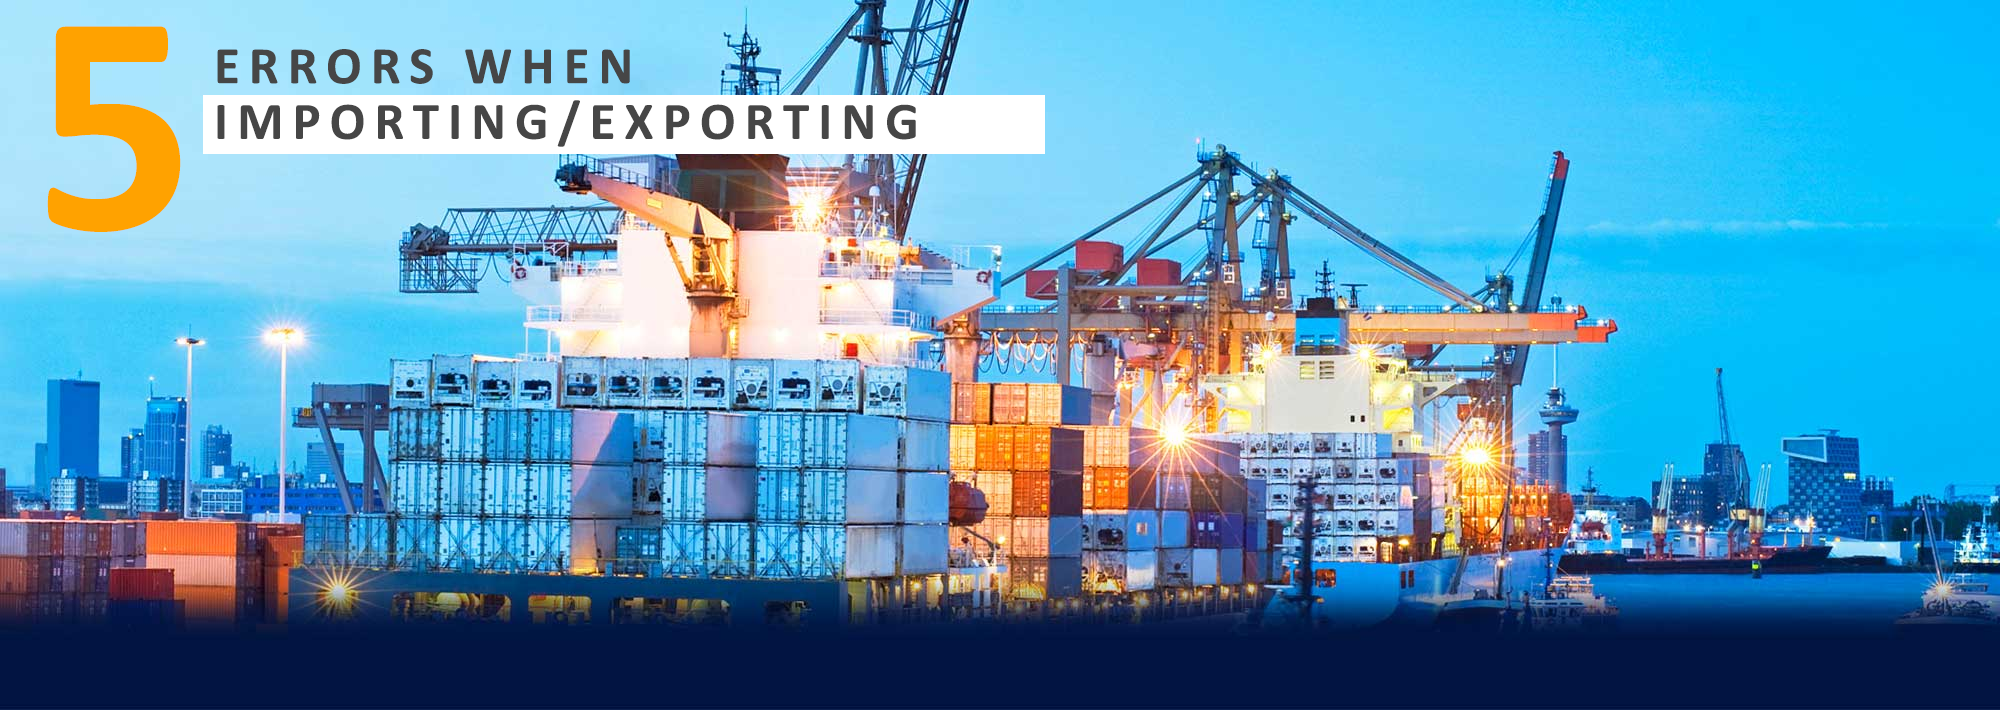 5 MISTAKES THAT YOU CANNOT AFFORD WHEN YOU EXPORT AND/OR IMPORT